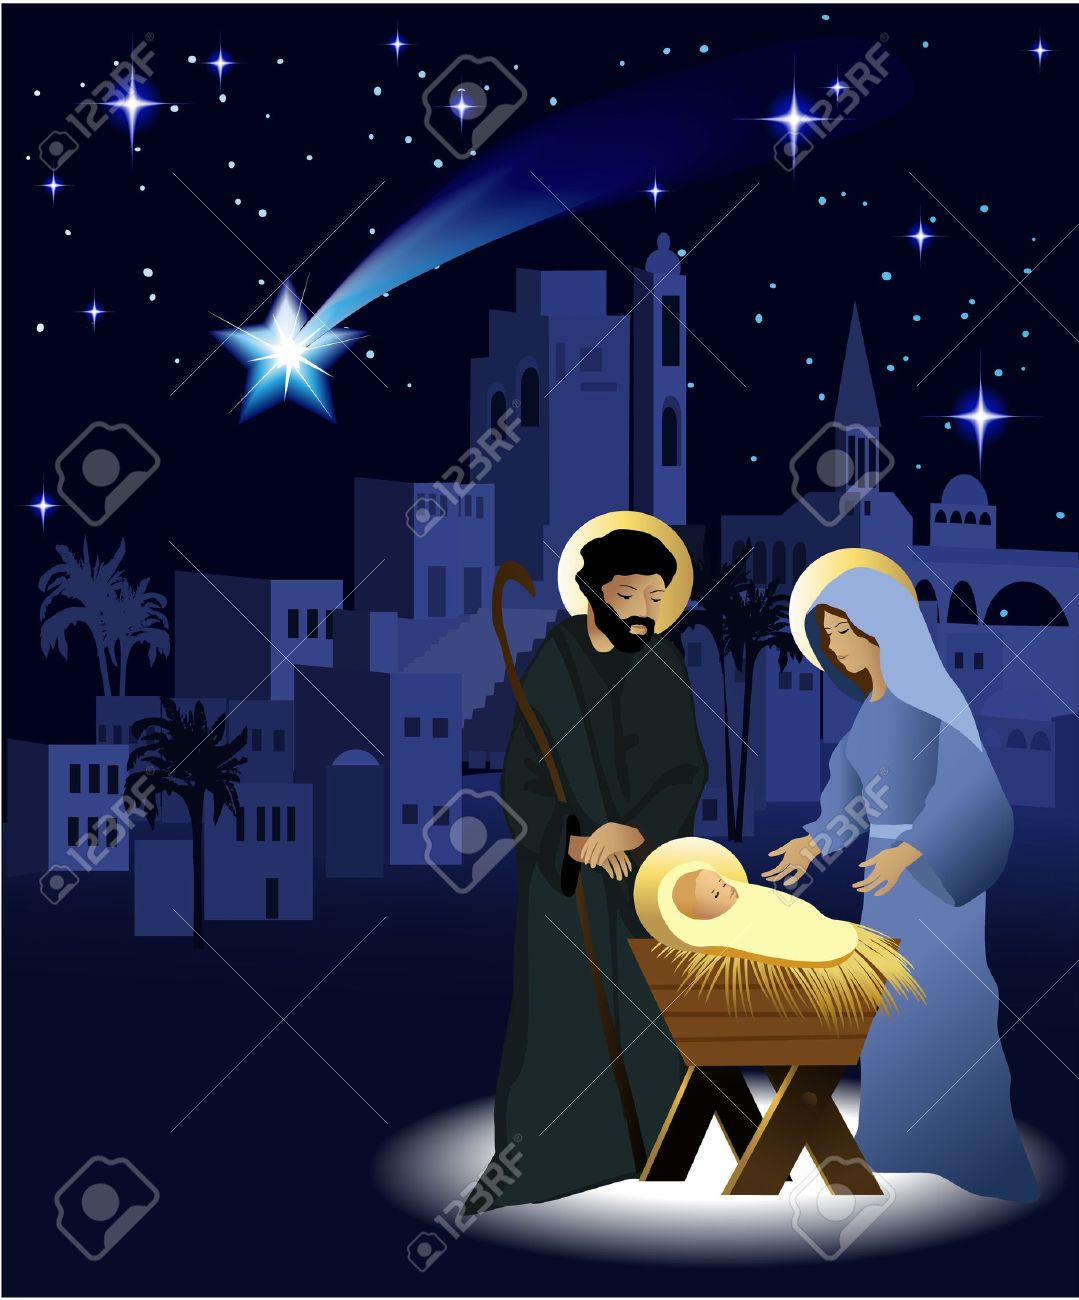 Christmas Nativity.Christmas Nativity Scene With Holy Family